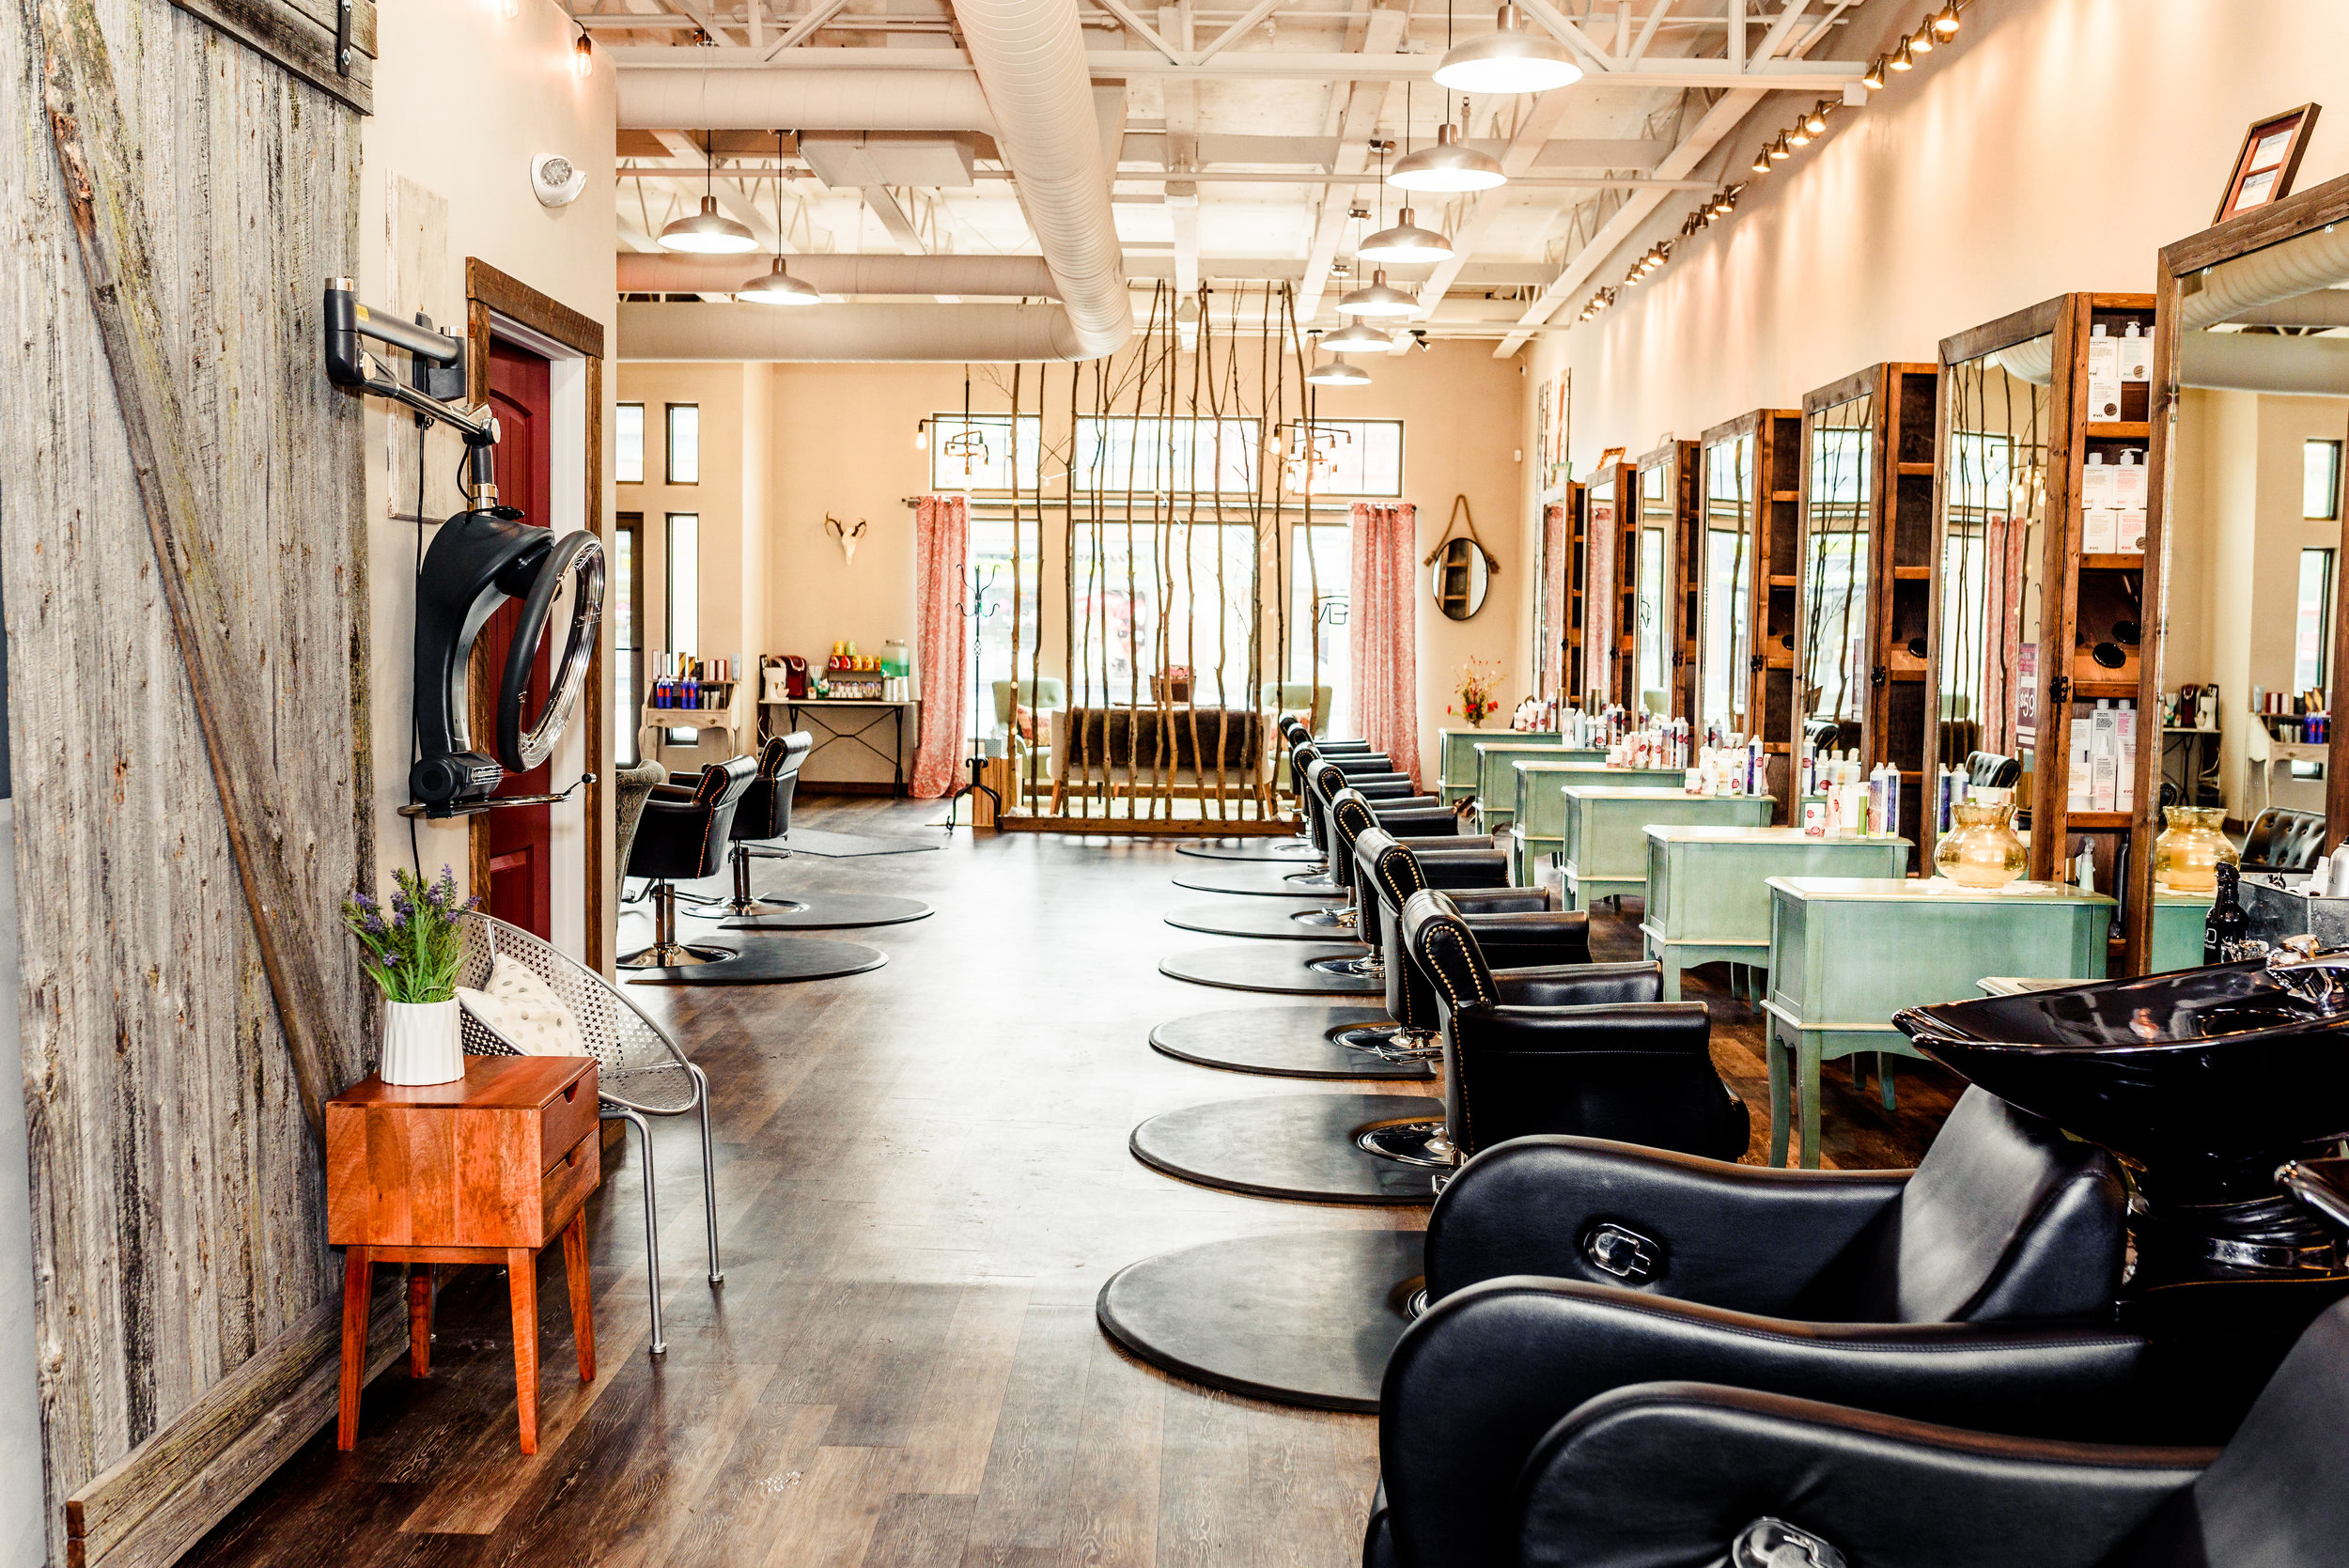 The salon is calling your name. A new season needs a new you.